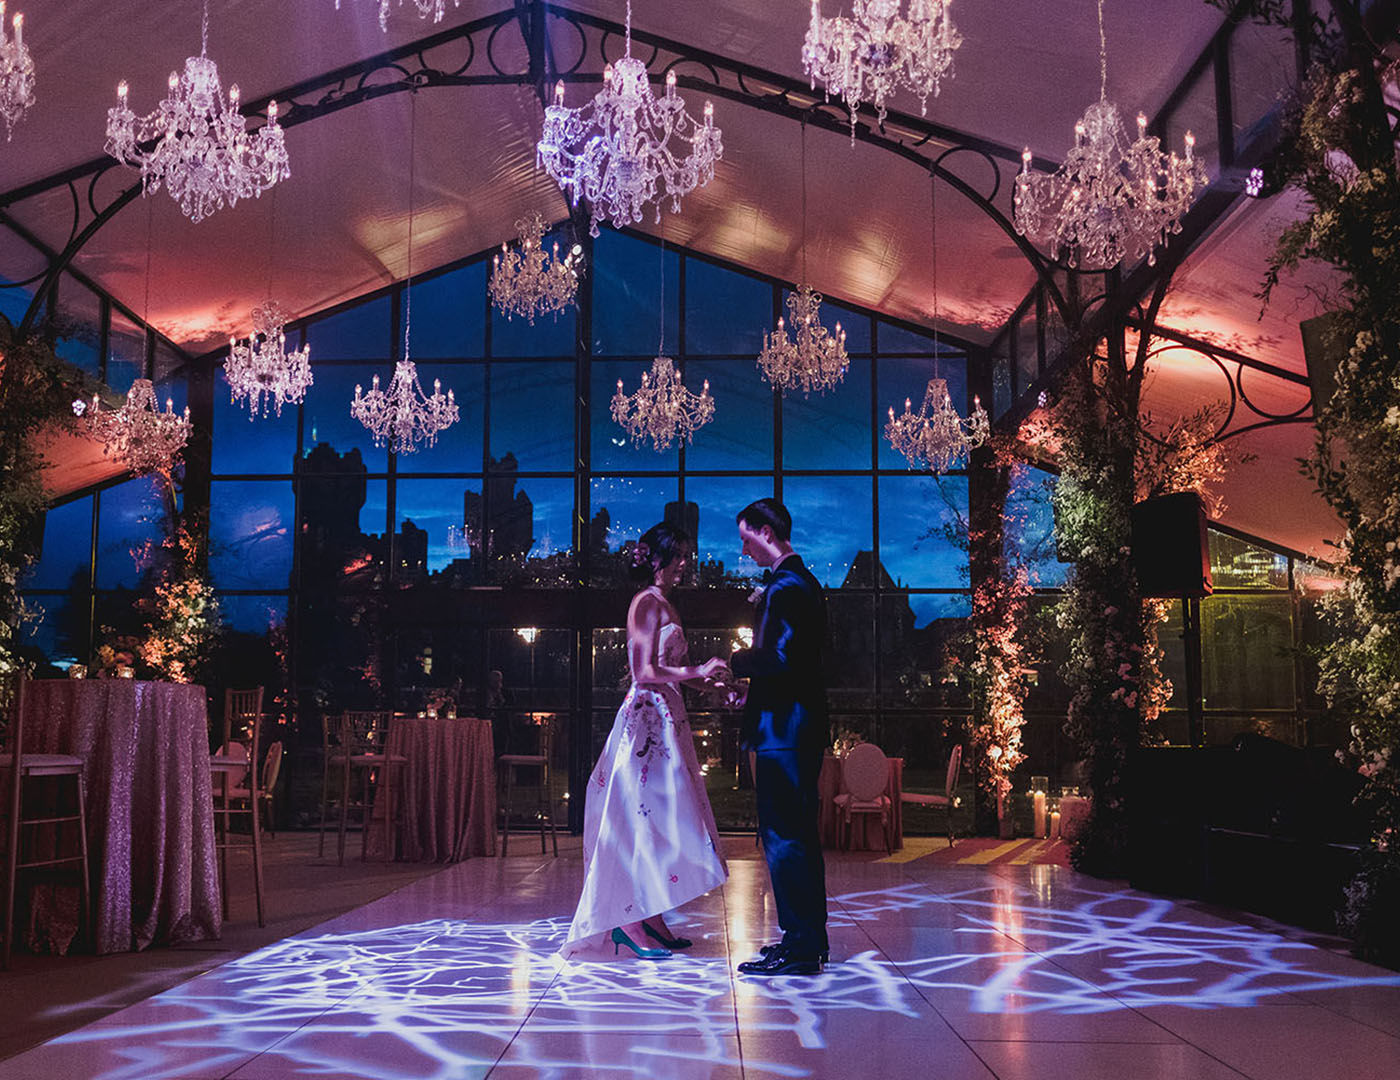 Ashford Castle, Wedding ceremony, Marquee ceremony, Event planner in Ireland, Wedding Planner in Ireland, Destination Weddings, Olivia Buckley International, first dance